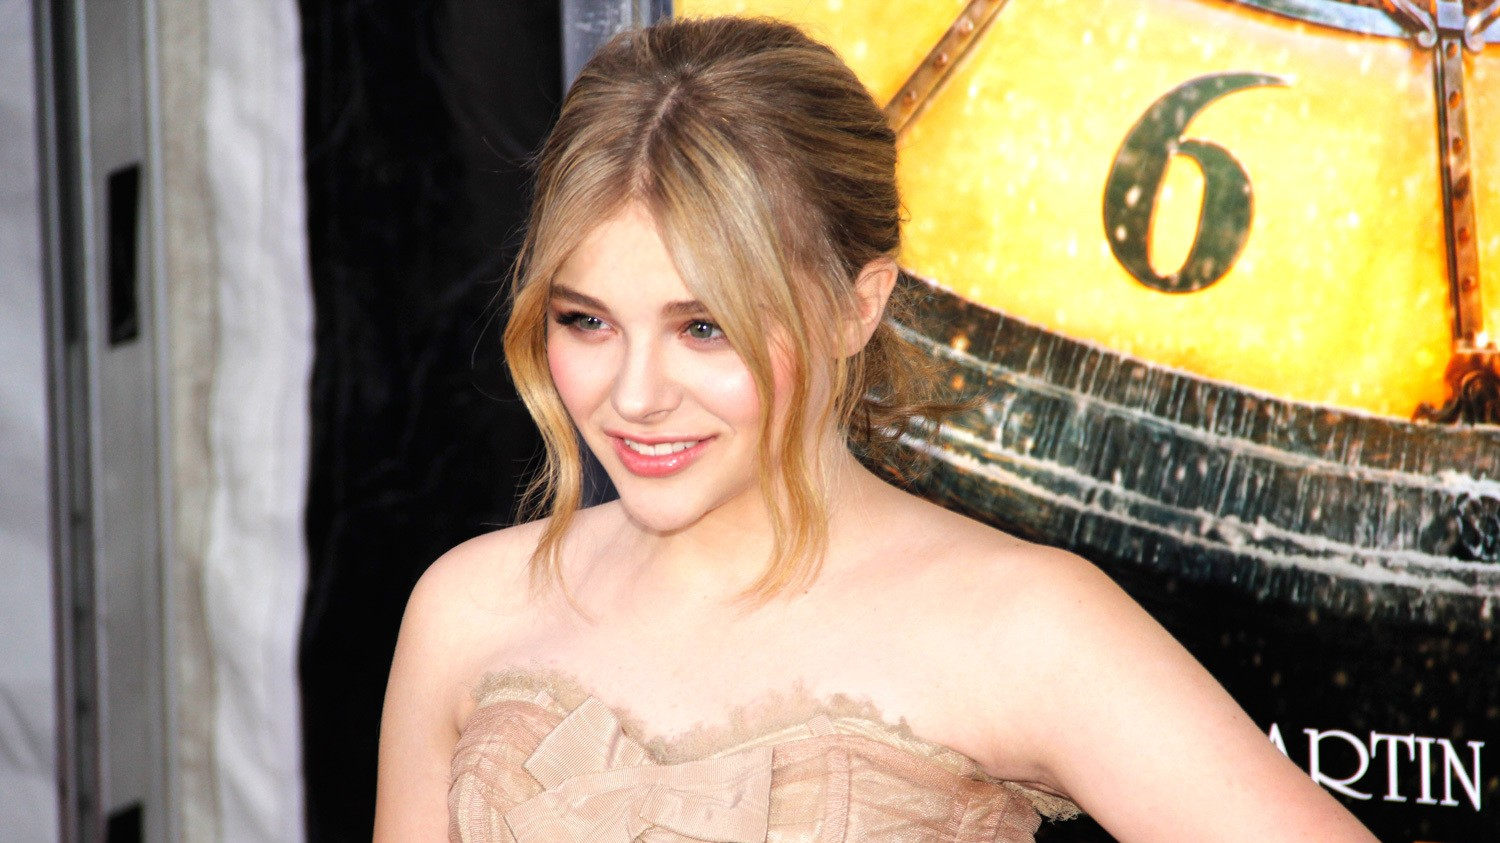 chloë grace moretz wants to know why our generation doesn't respect love, sexuality or itself